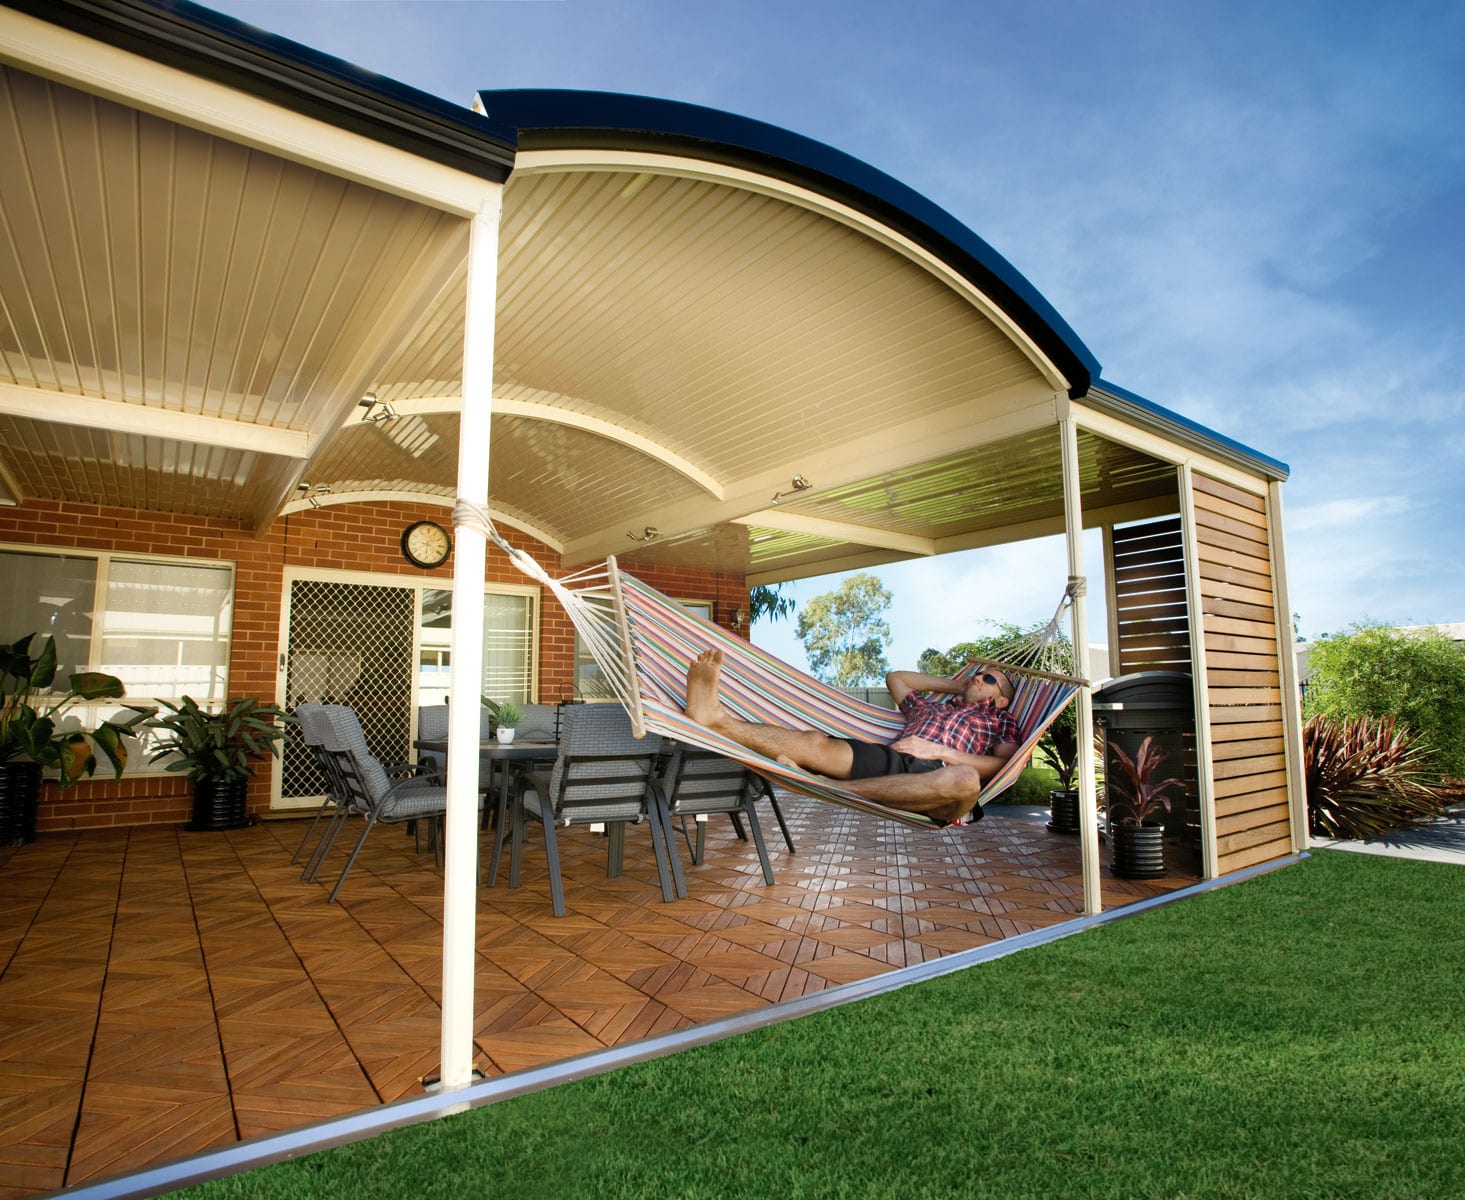 Stratco® Outback Curved Patios in Perth | Aussie Patio Designs on Curved Patio Ideas id=75510